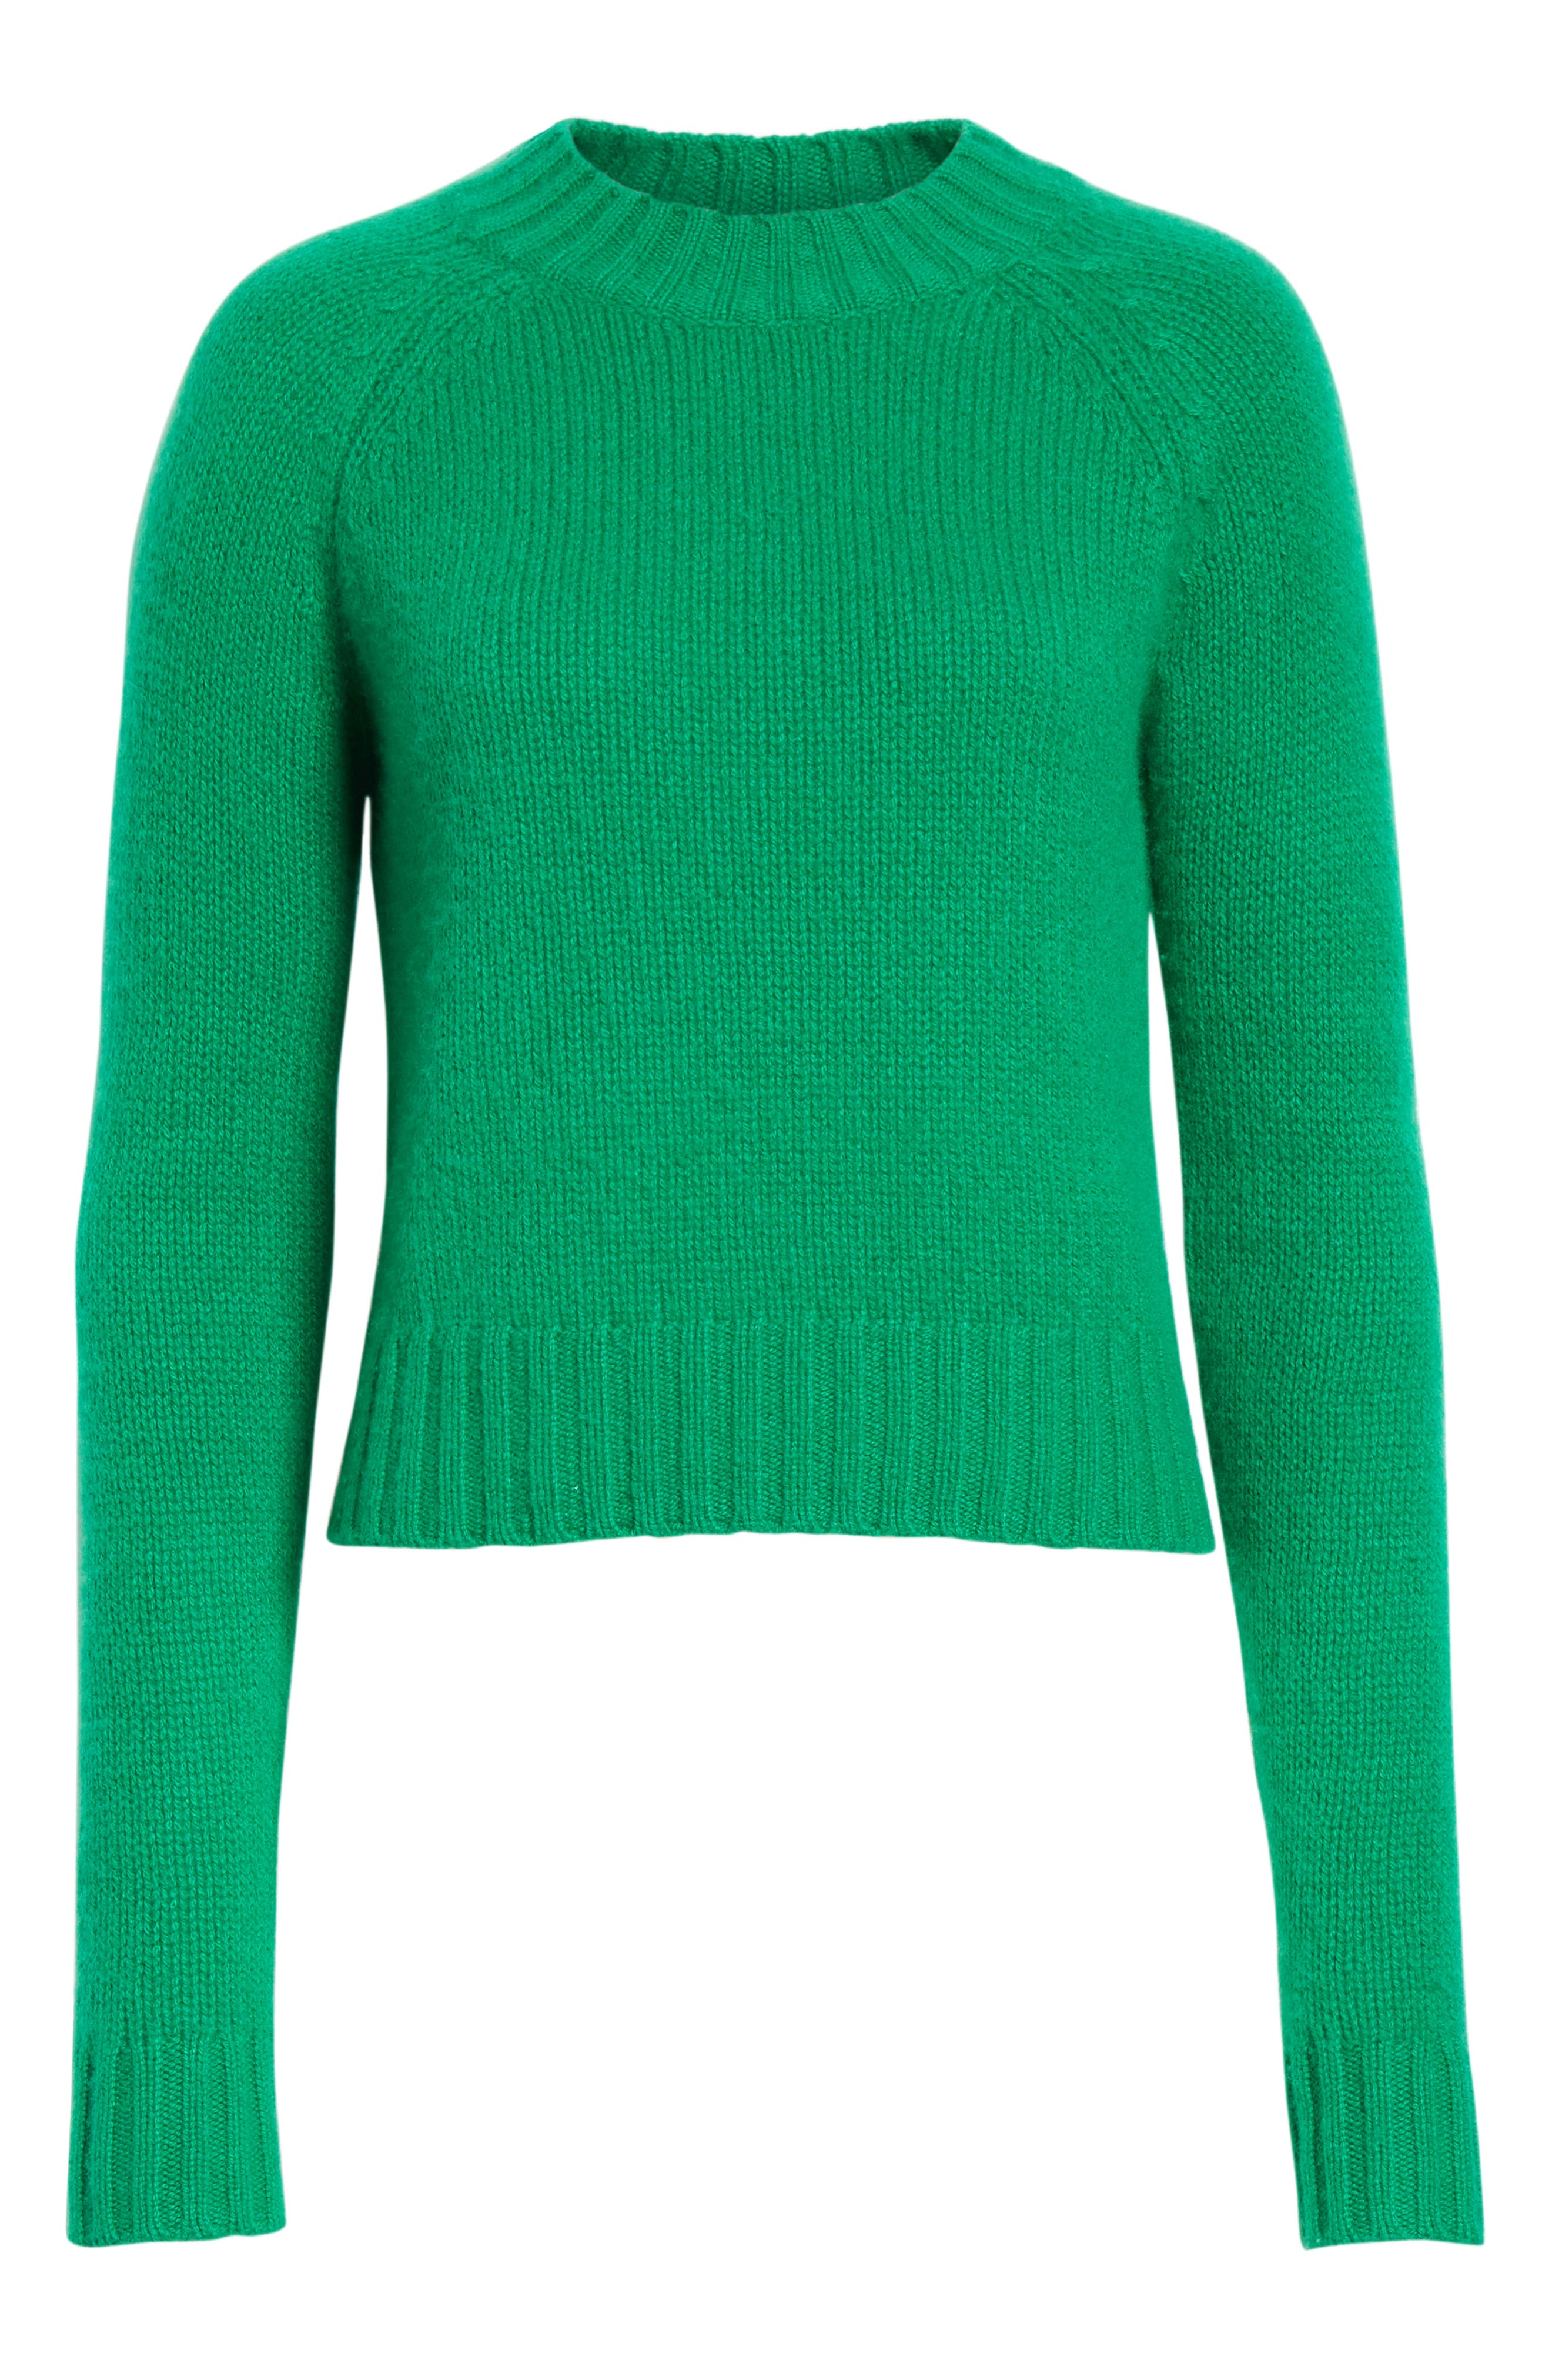 Shrunken Cashmere Sweater,                             Alternate thumbnail 6, color,                             LEAF